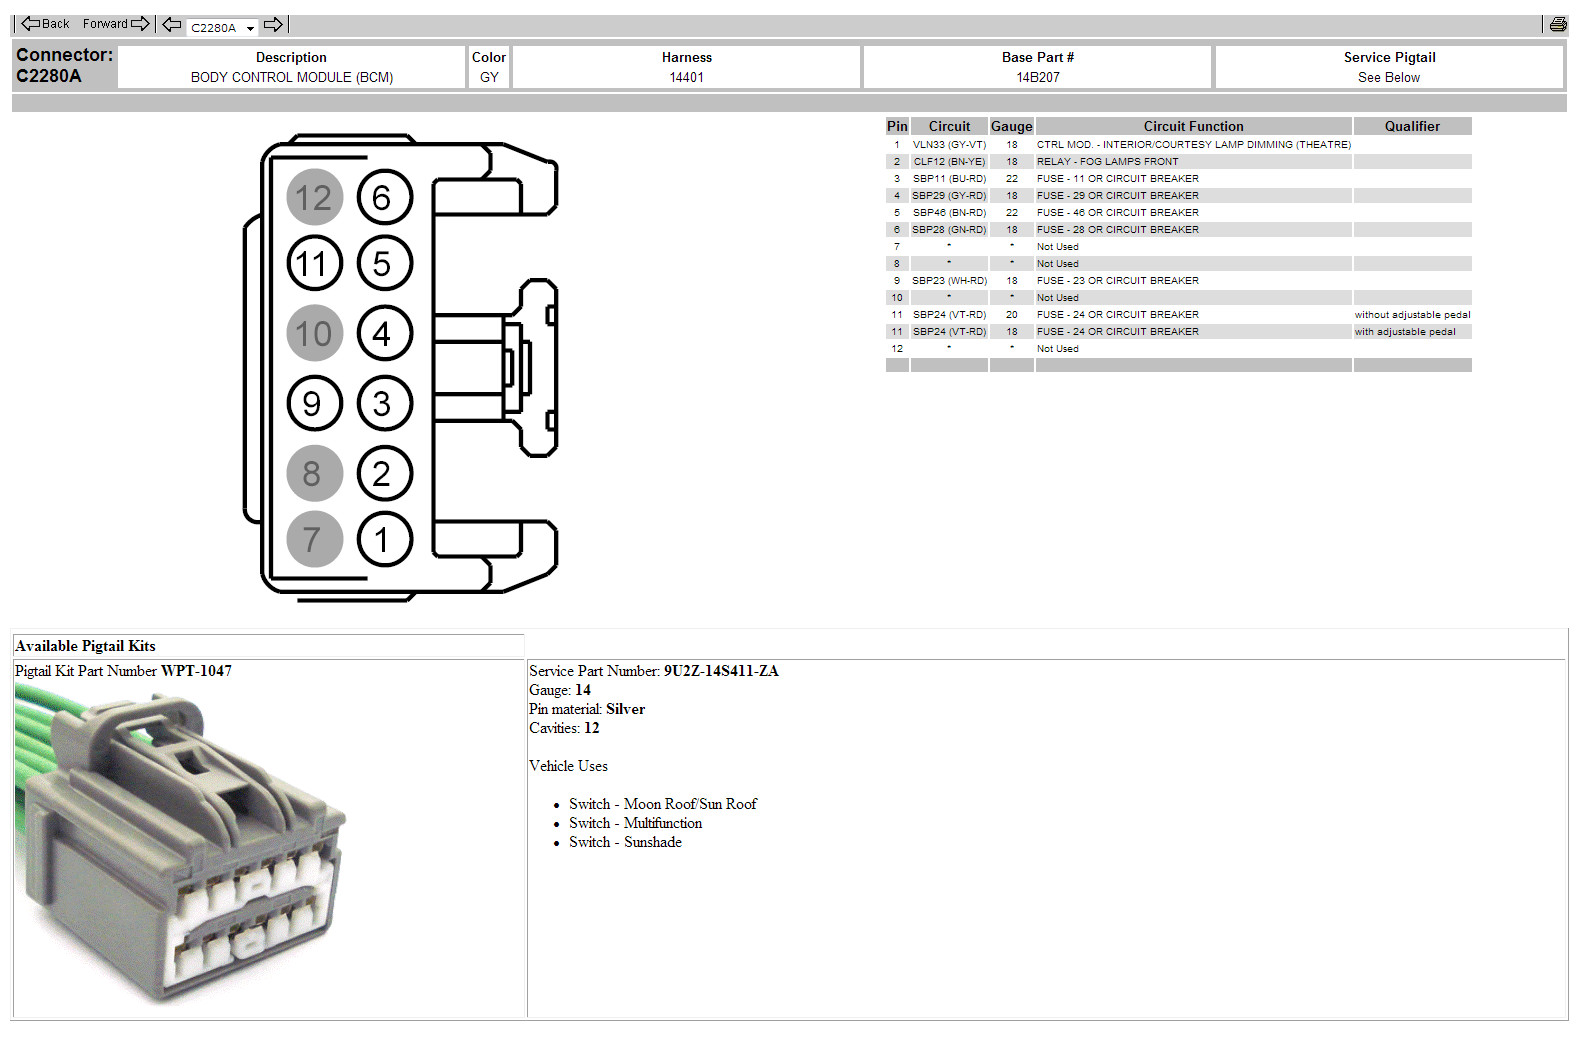 i need a pcm wiring schematic for a 2011 f150 with 6 2 engine  i am doing a custom instalation